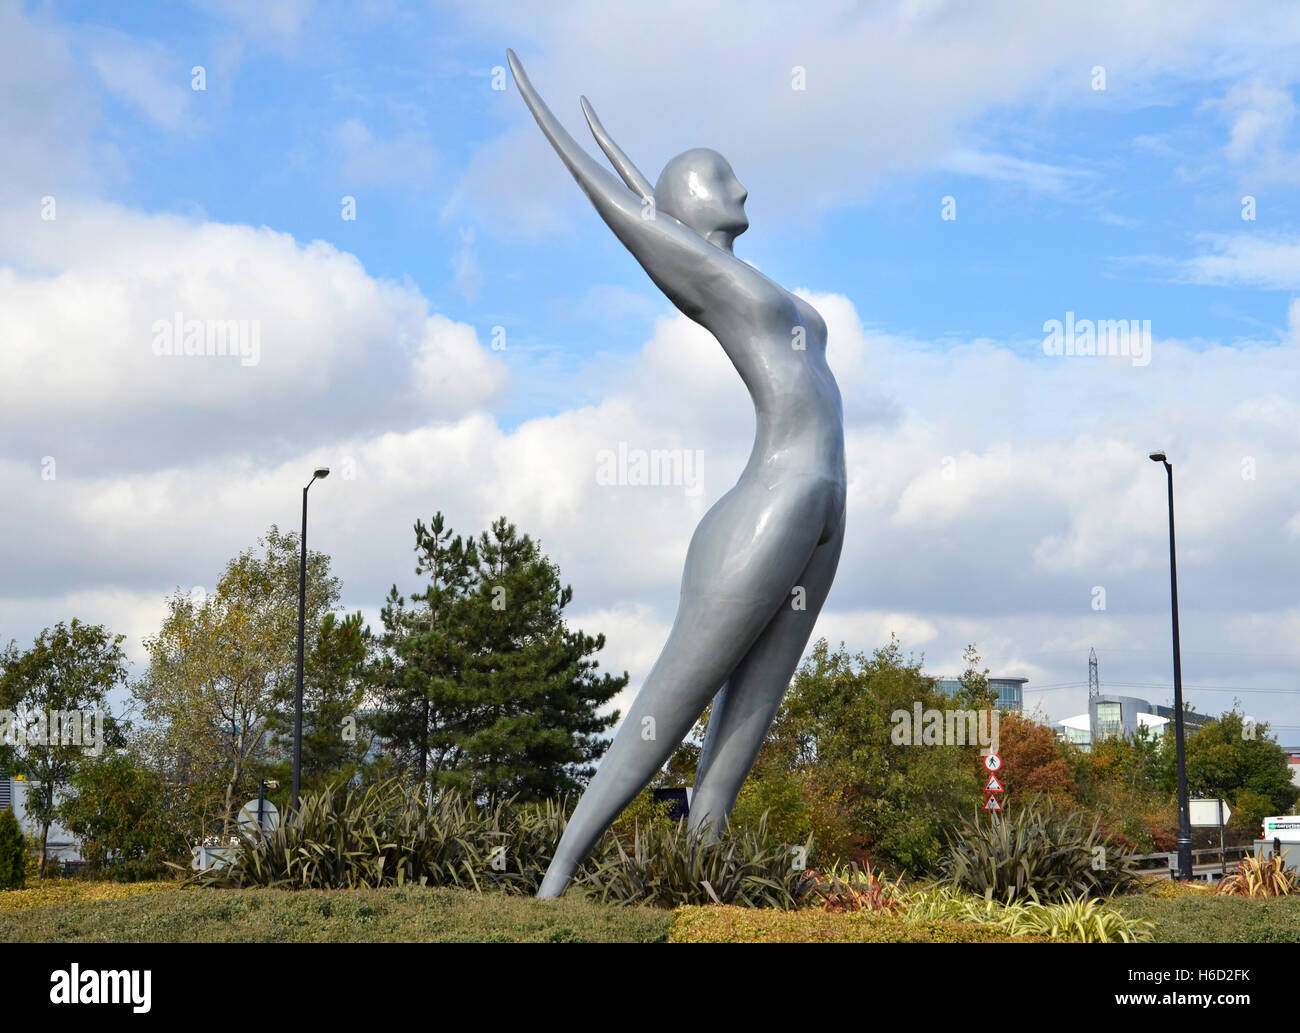 A bronze statue of Athena by artist Nasser Azam near the London City Airport in Silvertown, east London - Stock Image